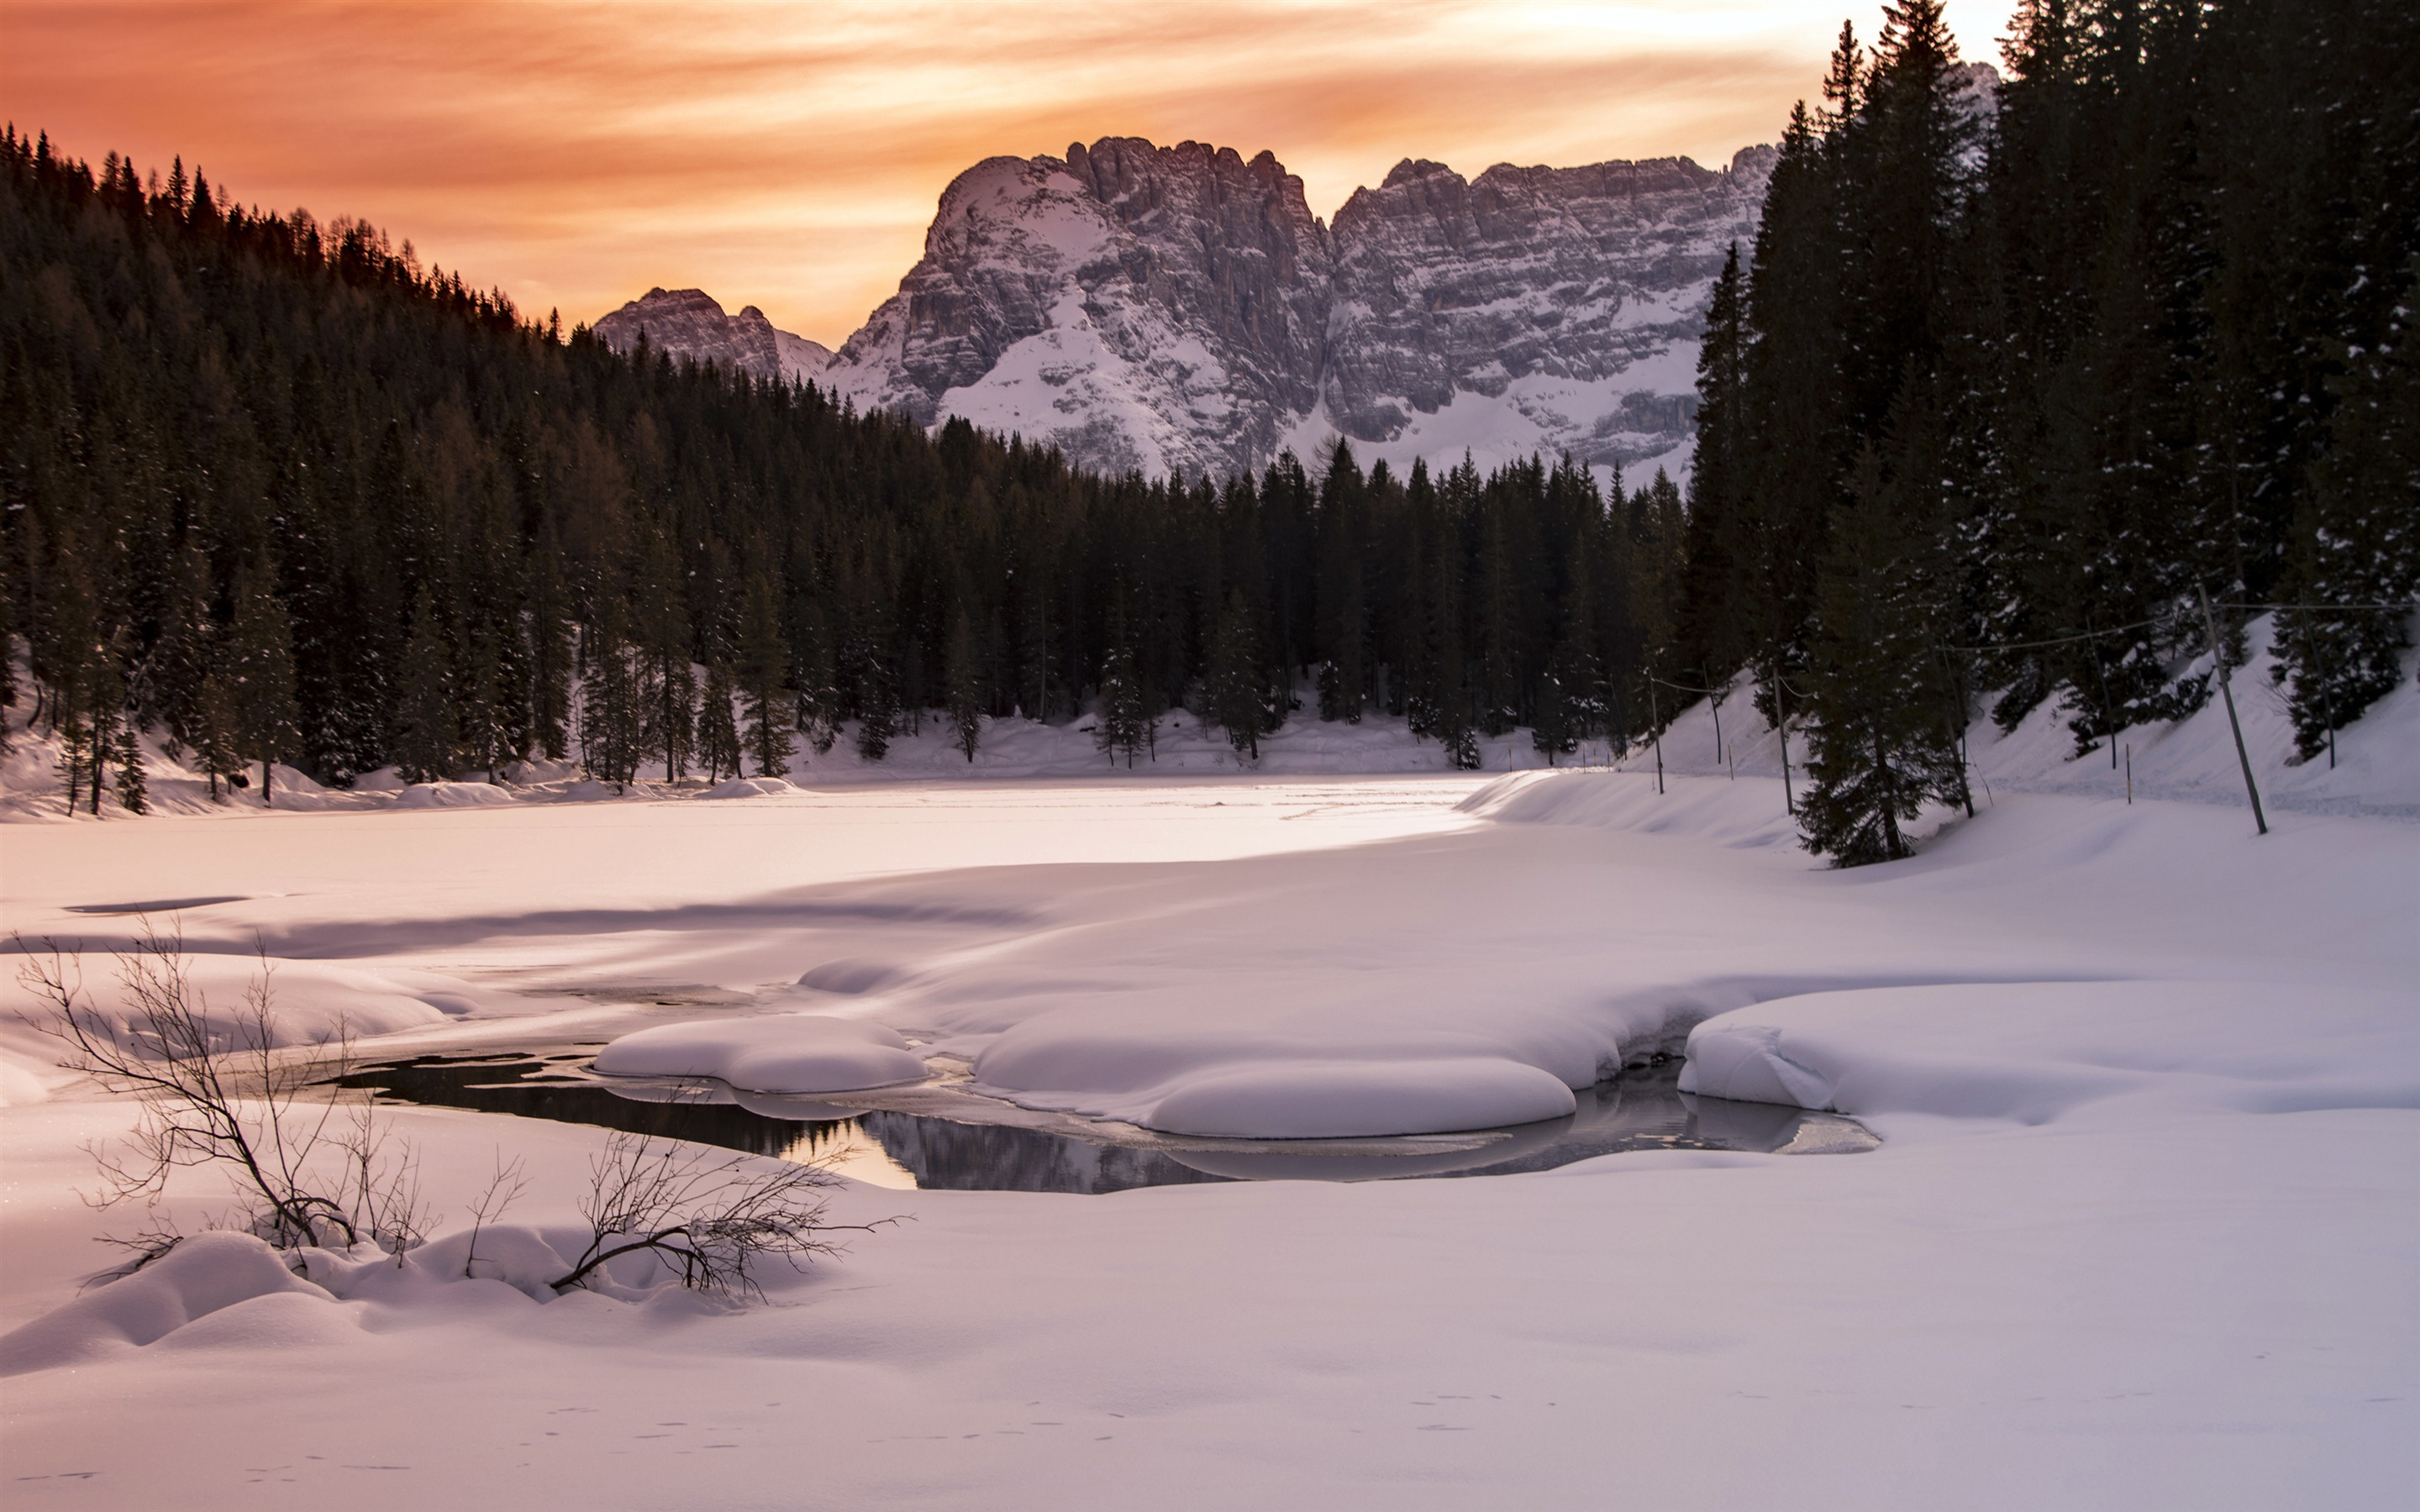 Winter jungle Alpine ice snow sunset - 2880x1800 wallpaper download